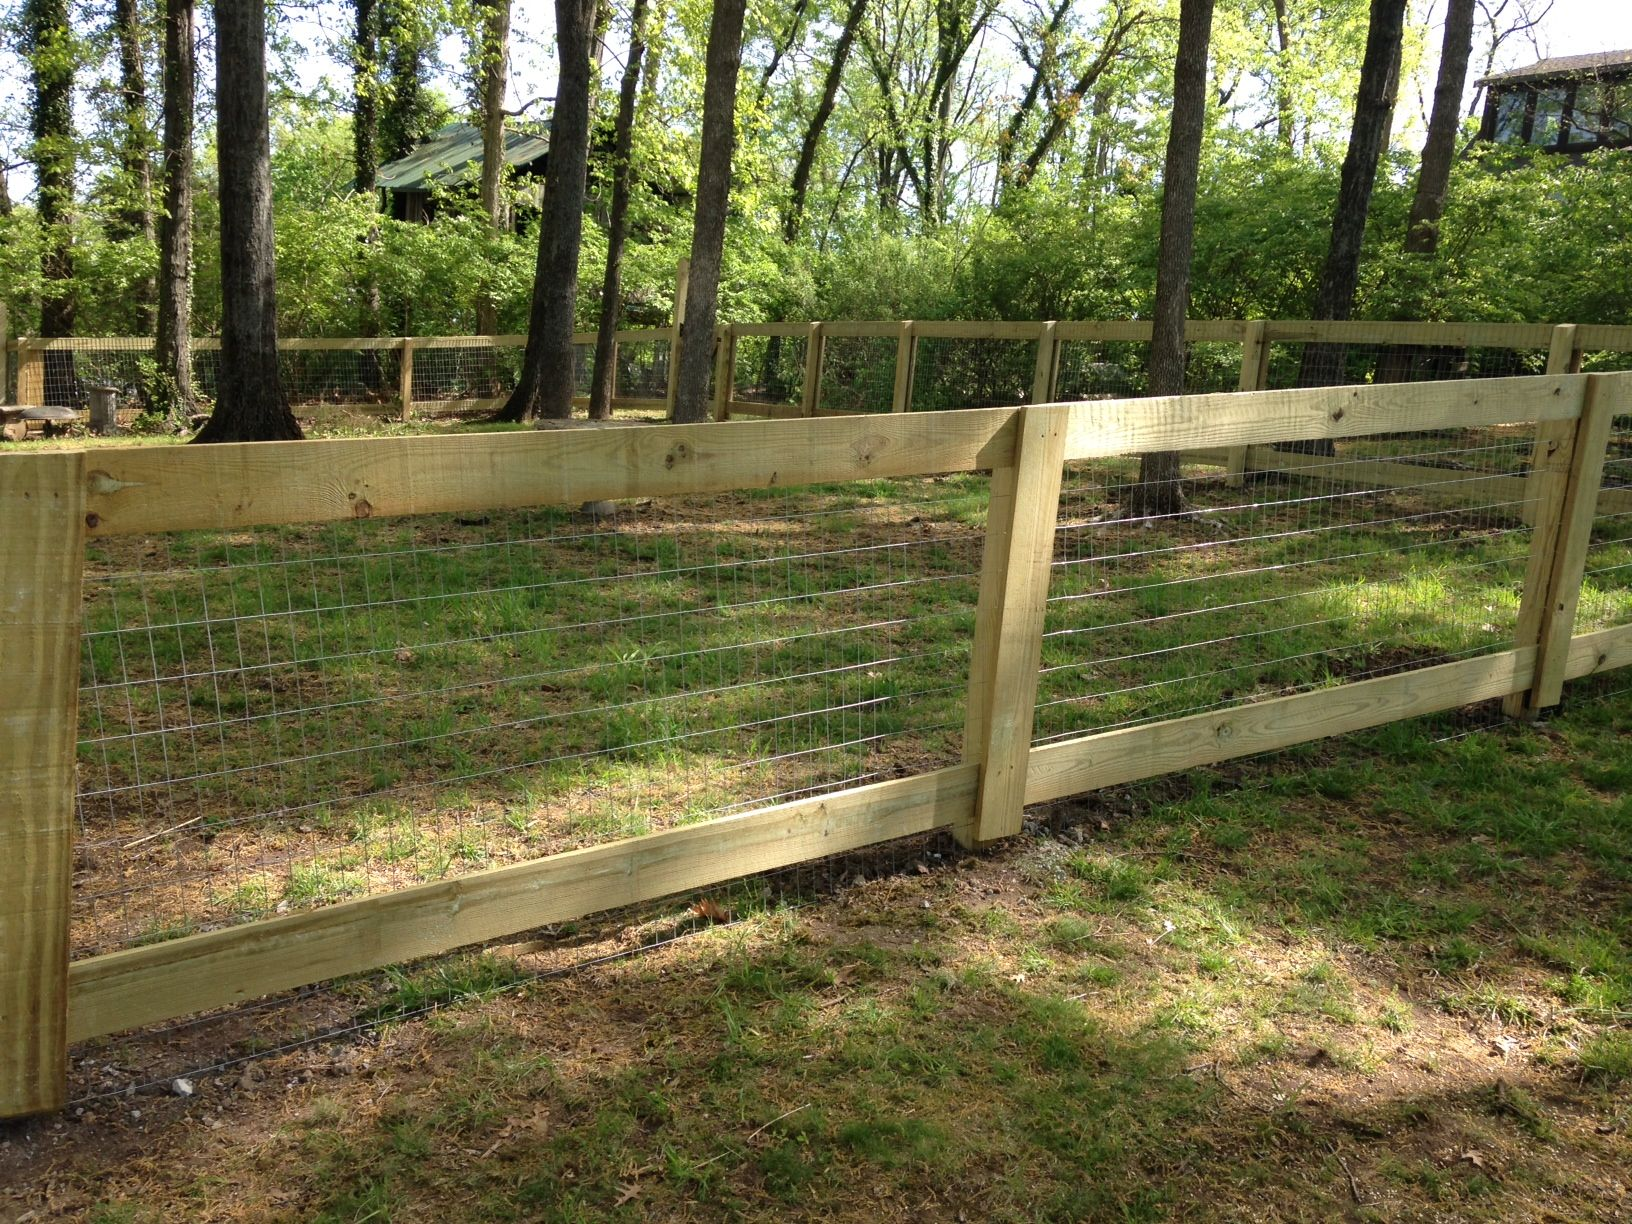 Lovely | Home Depot Electric Fence for Dogs | Insured By Ross